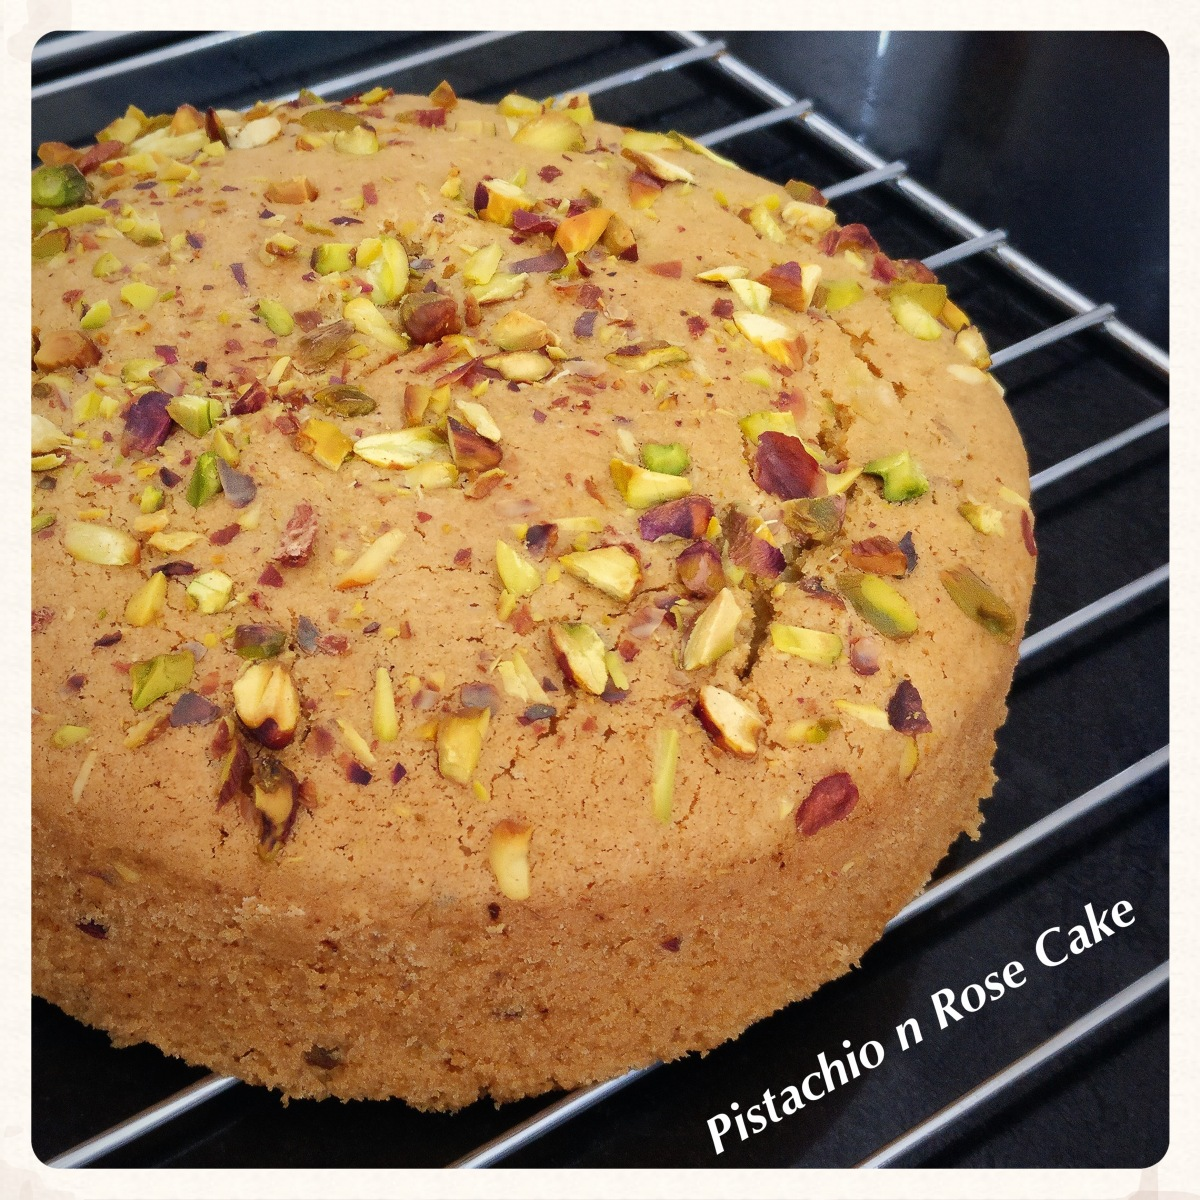 Pistachio and Rose Cake (Egg-less) Recipe